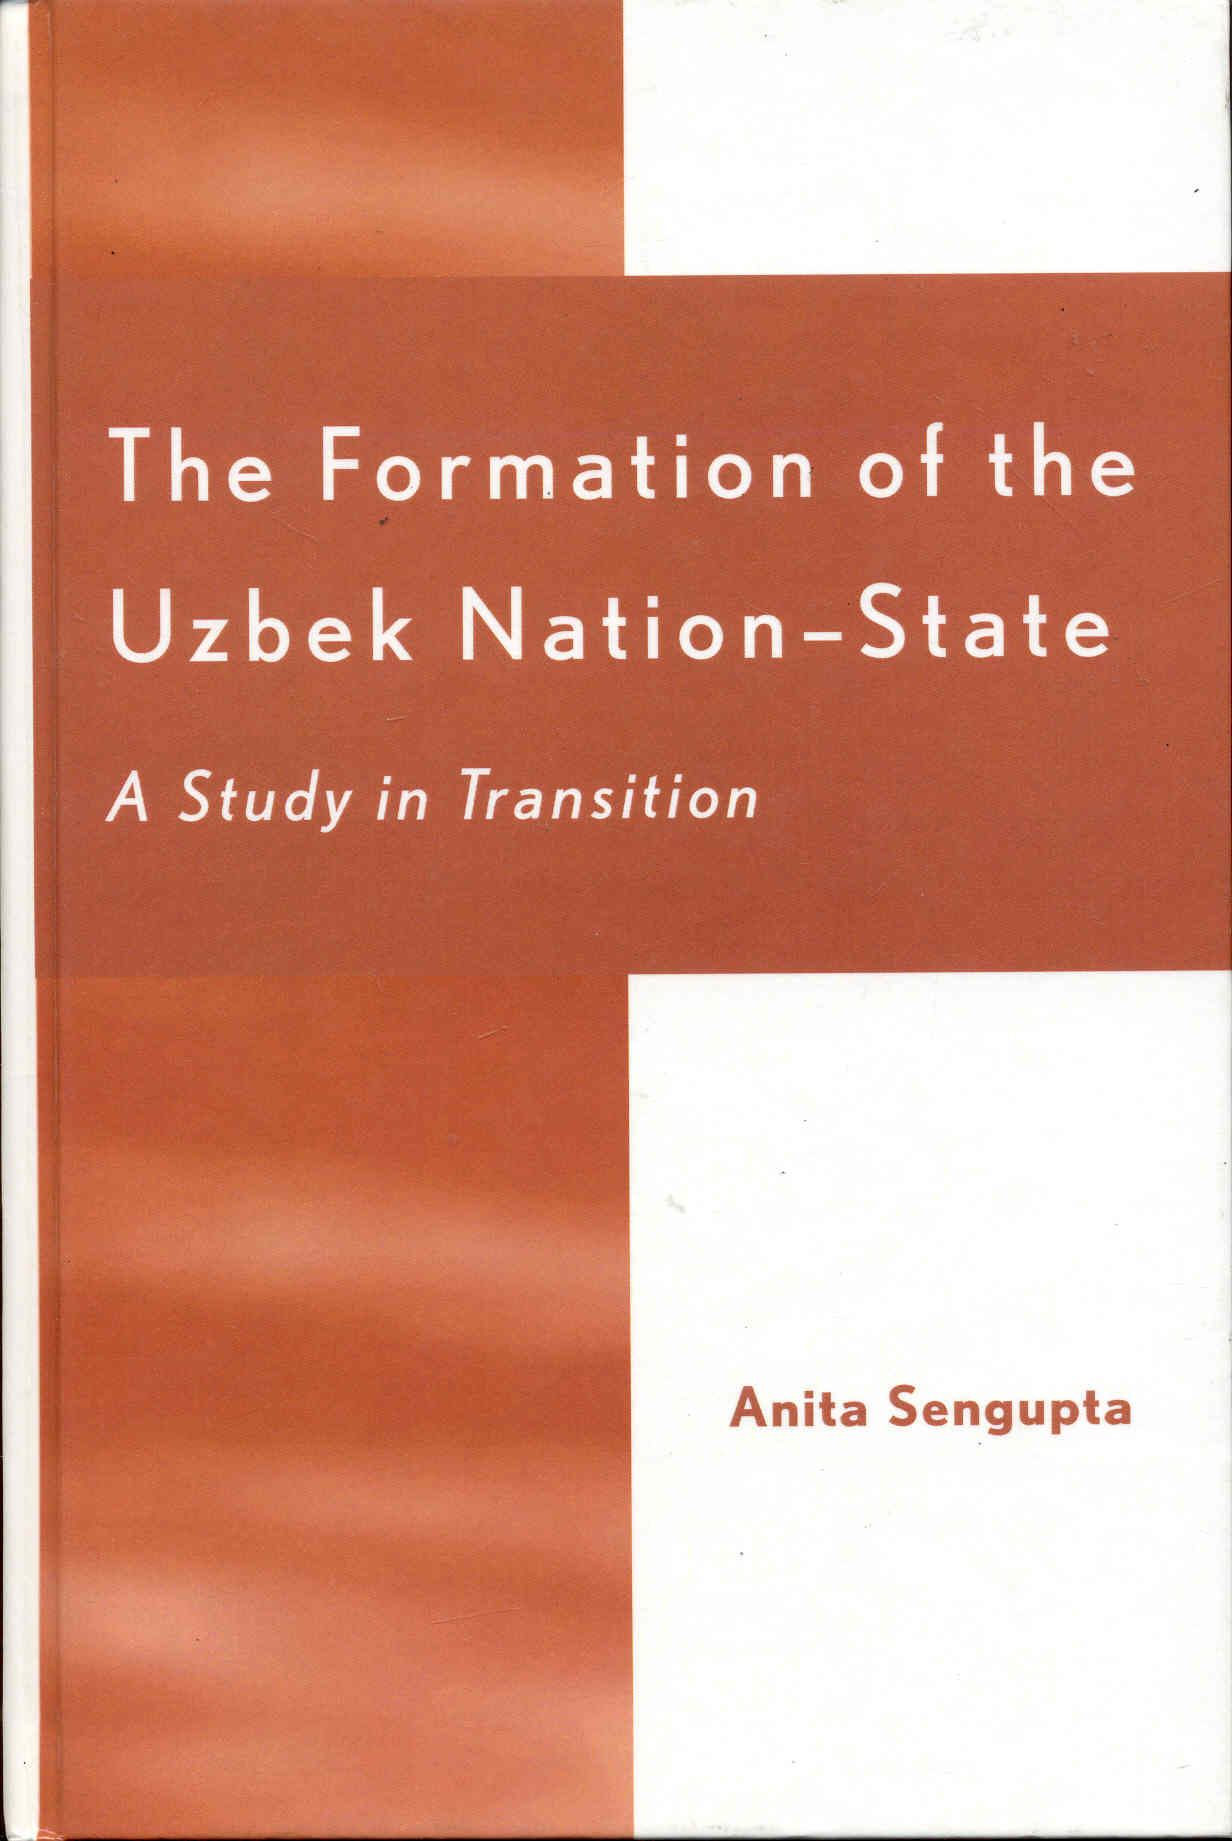 Image for The Formation of the Uzbek Nation-State: A Study in Transition